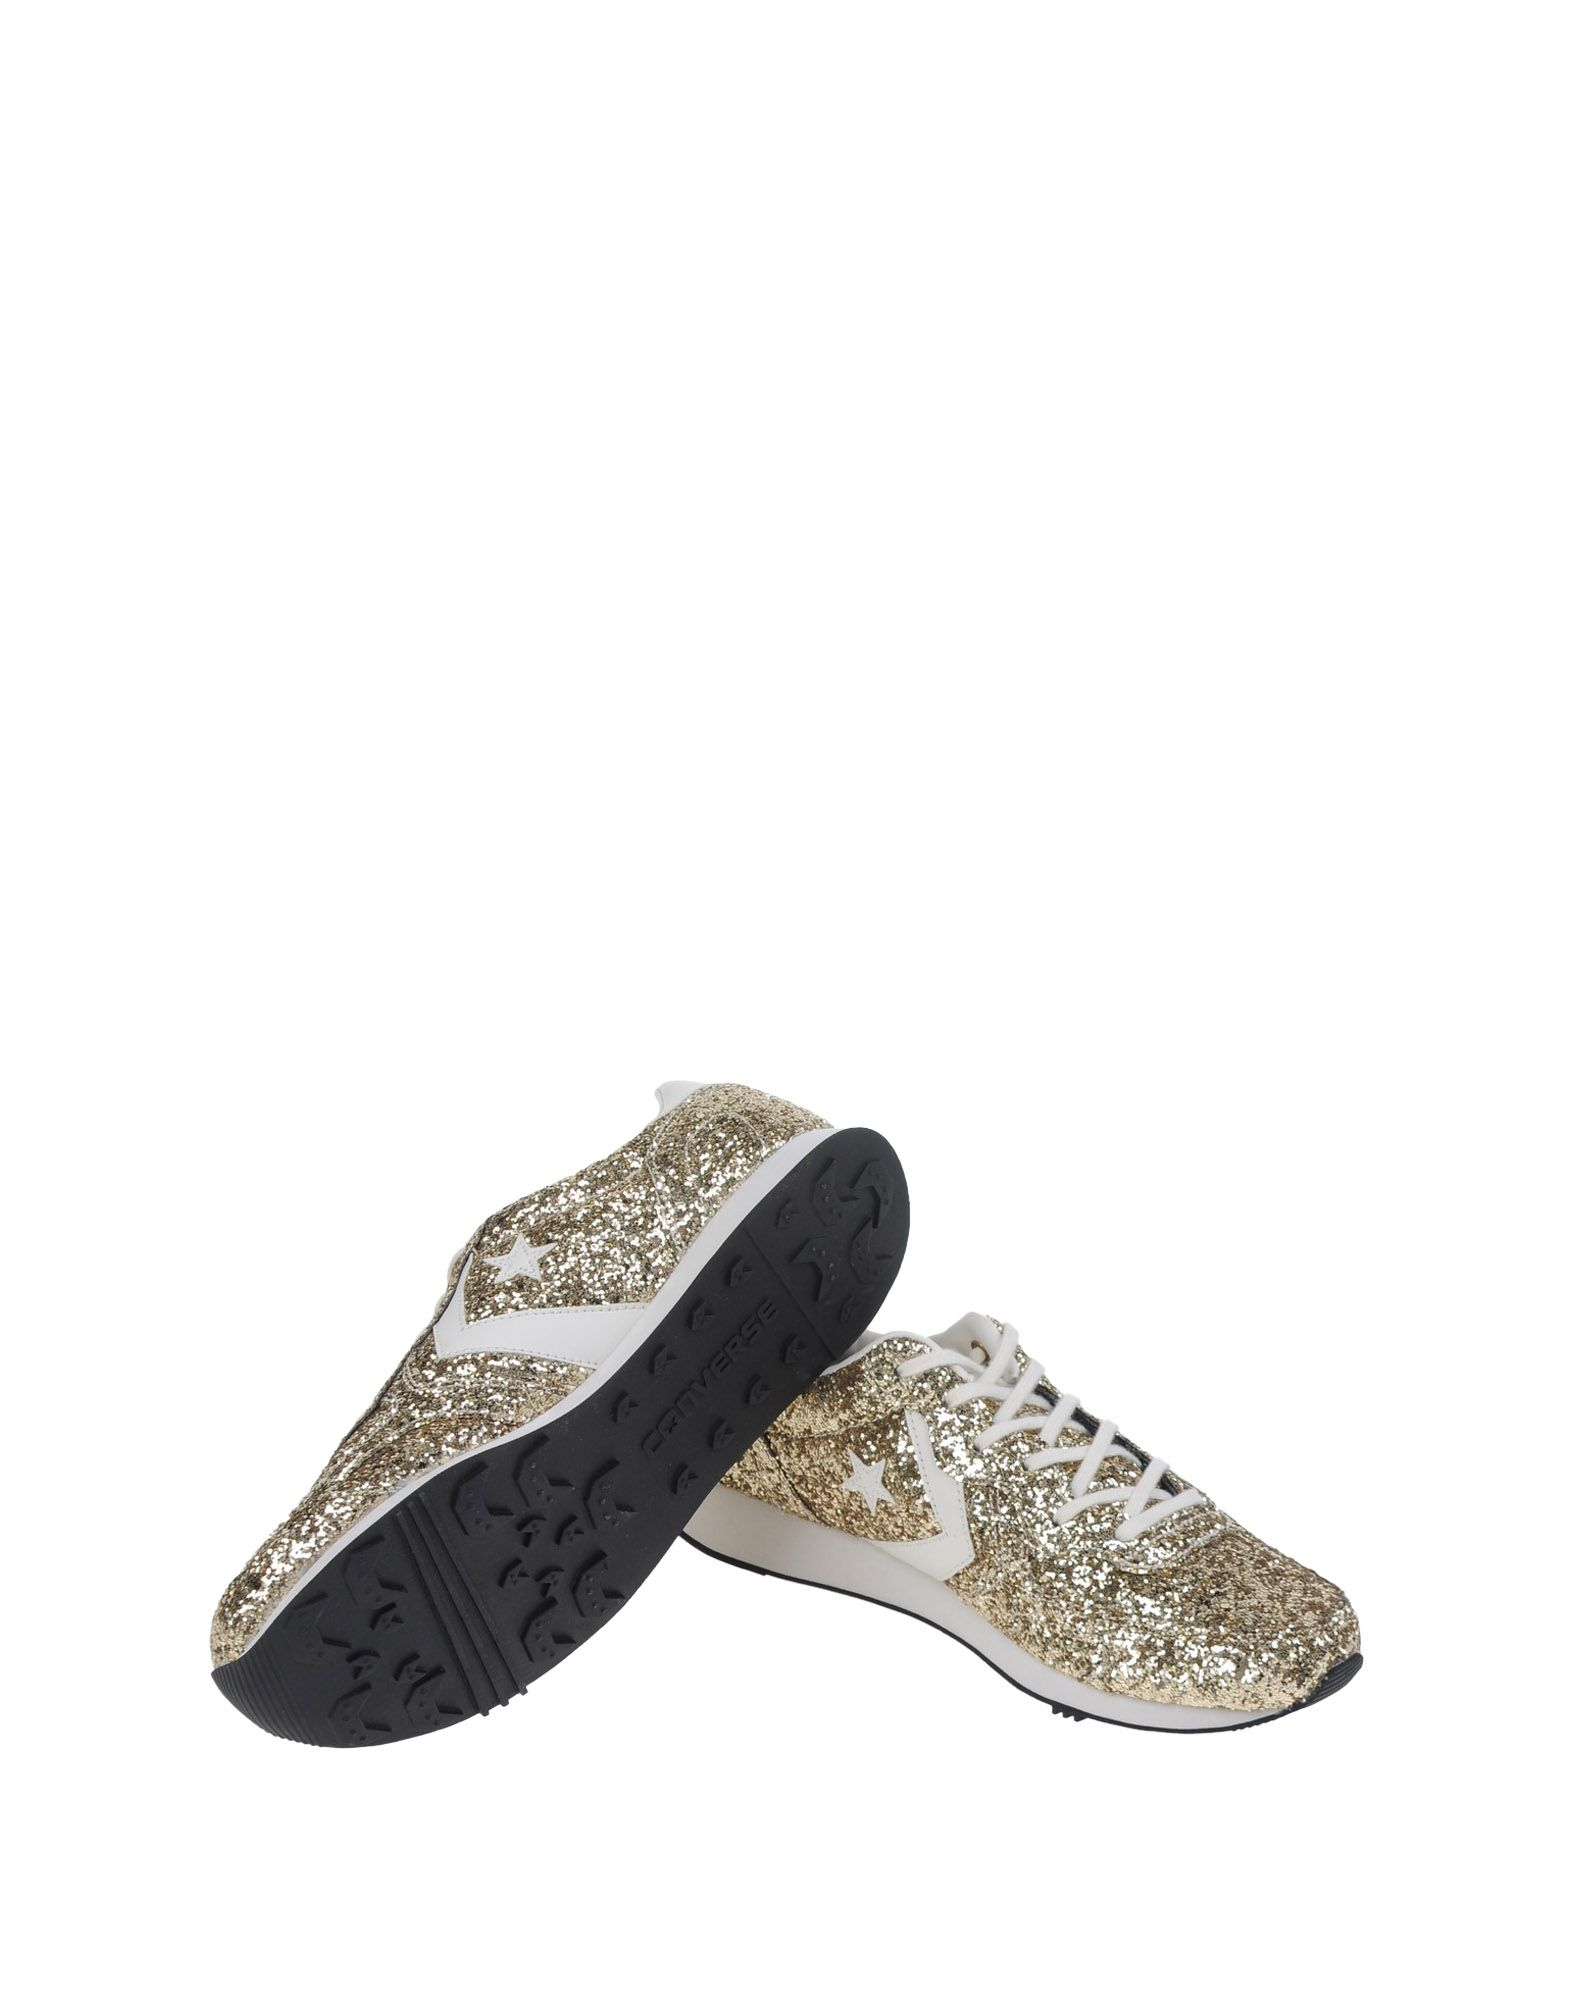 Sneakers Converse Cons Auckland Racer Ox Glitter - Femme - Sneakers Converse Cons sur